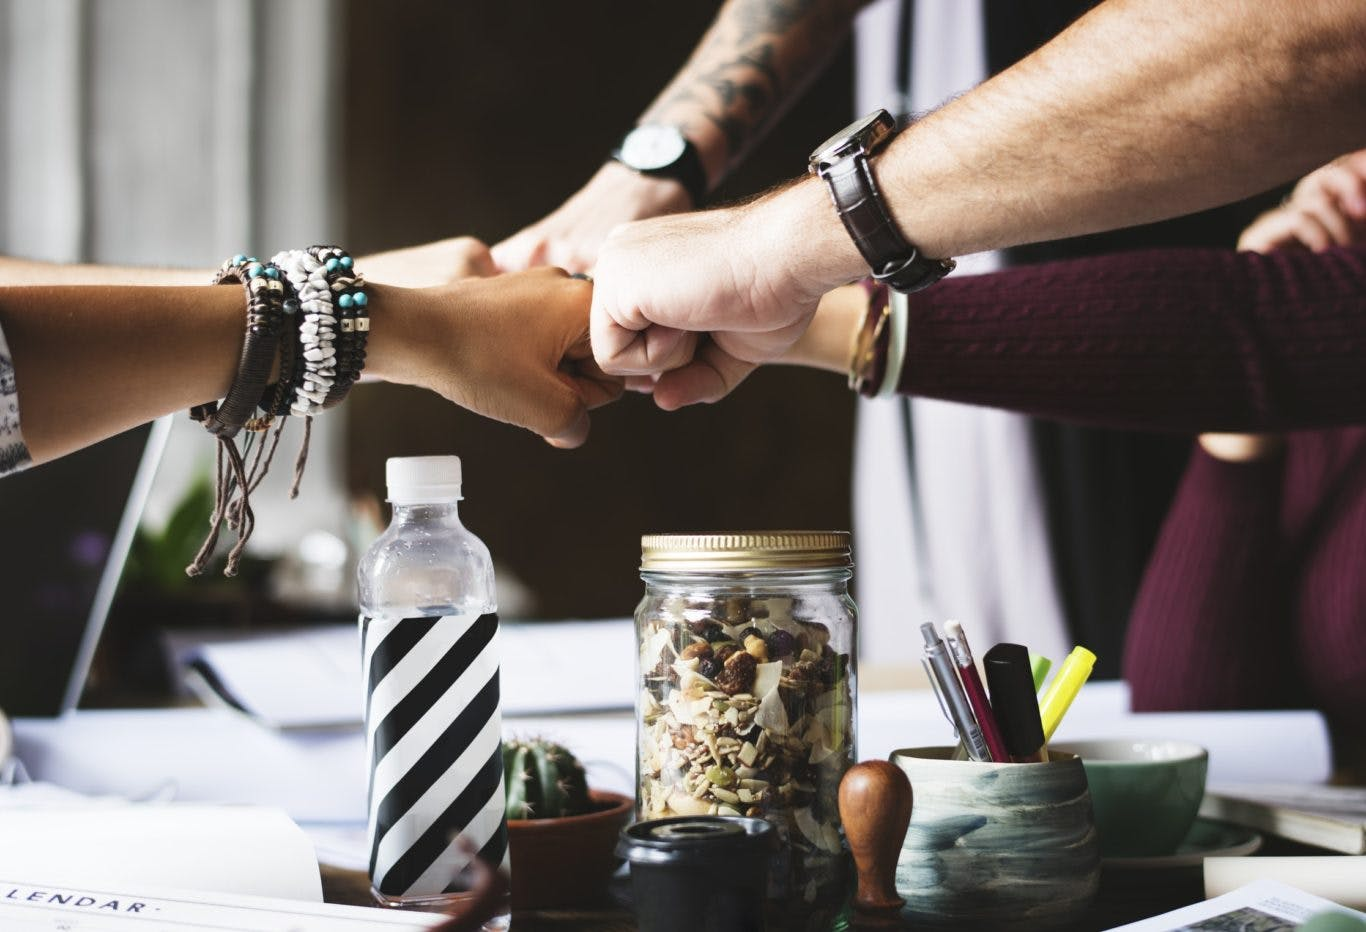 A group of people fist-bumping in a office